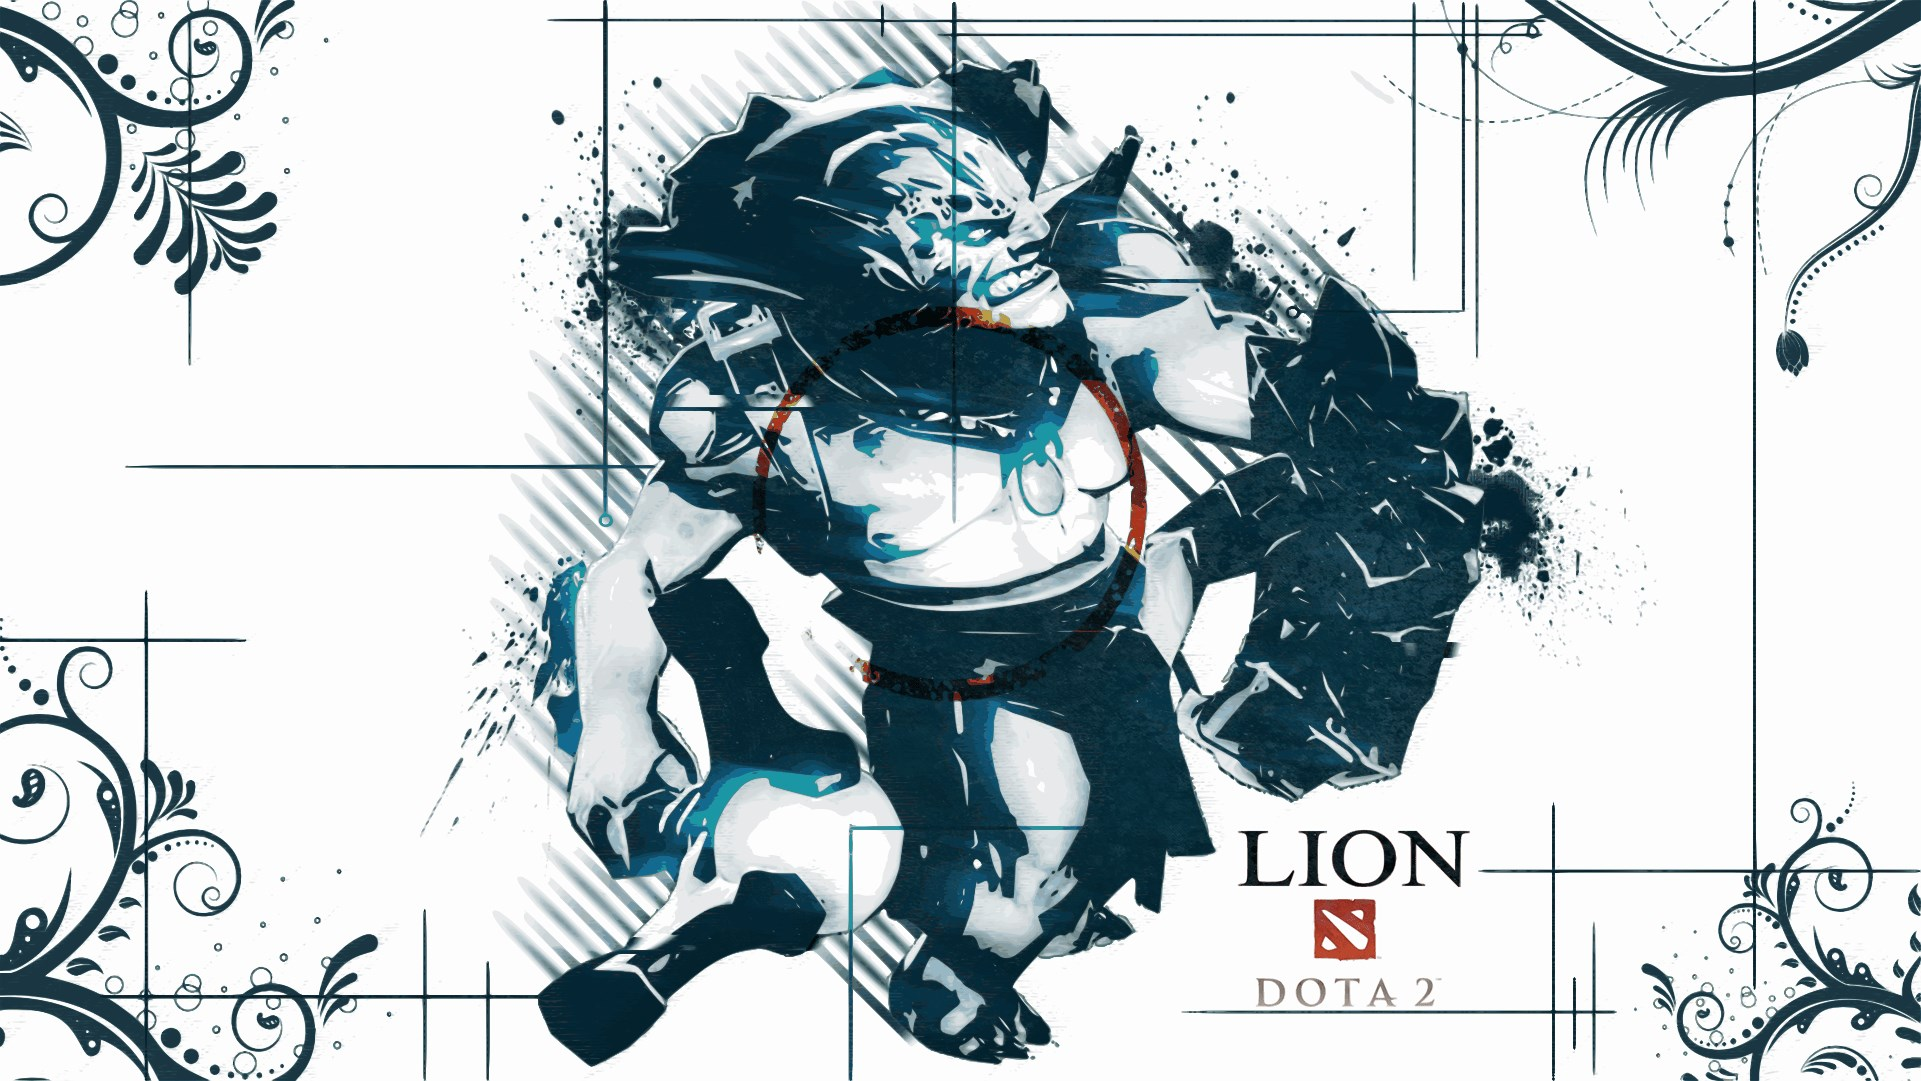 Dota2 : Lion Backgrounds